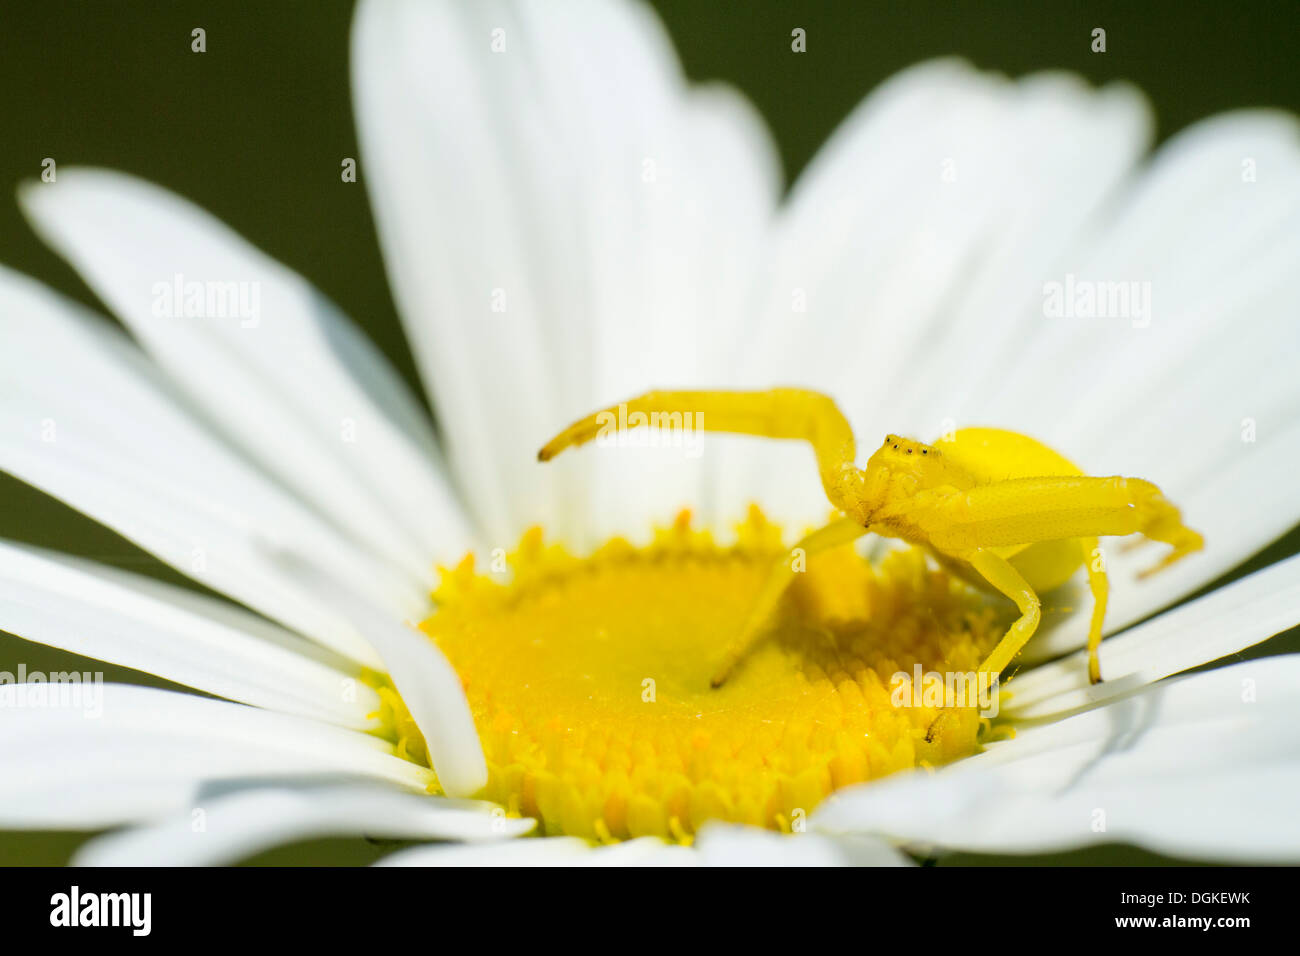 female yellow crab spider waits patiently poised on an oxeye daisy - Stock Image